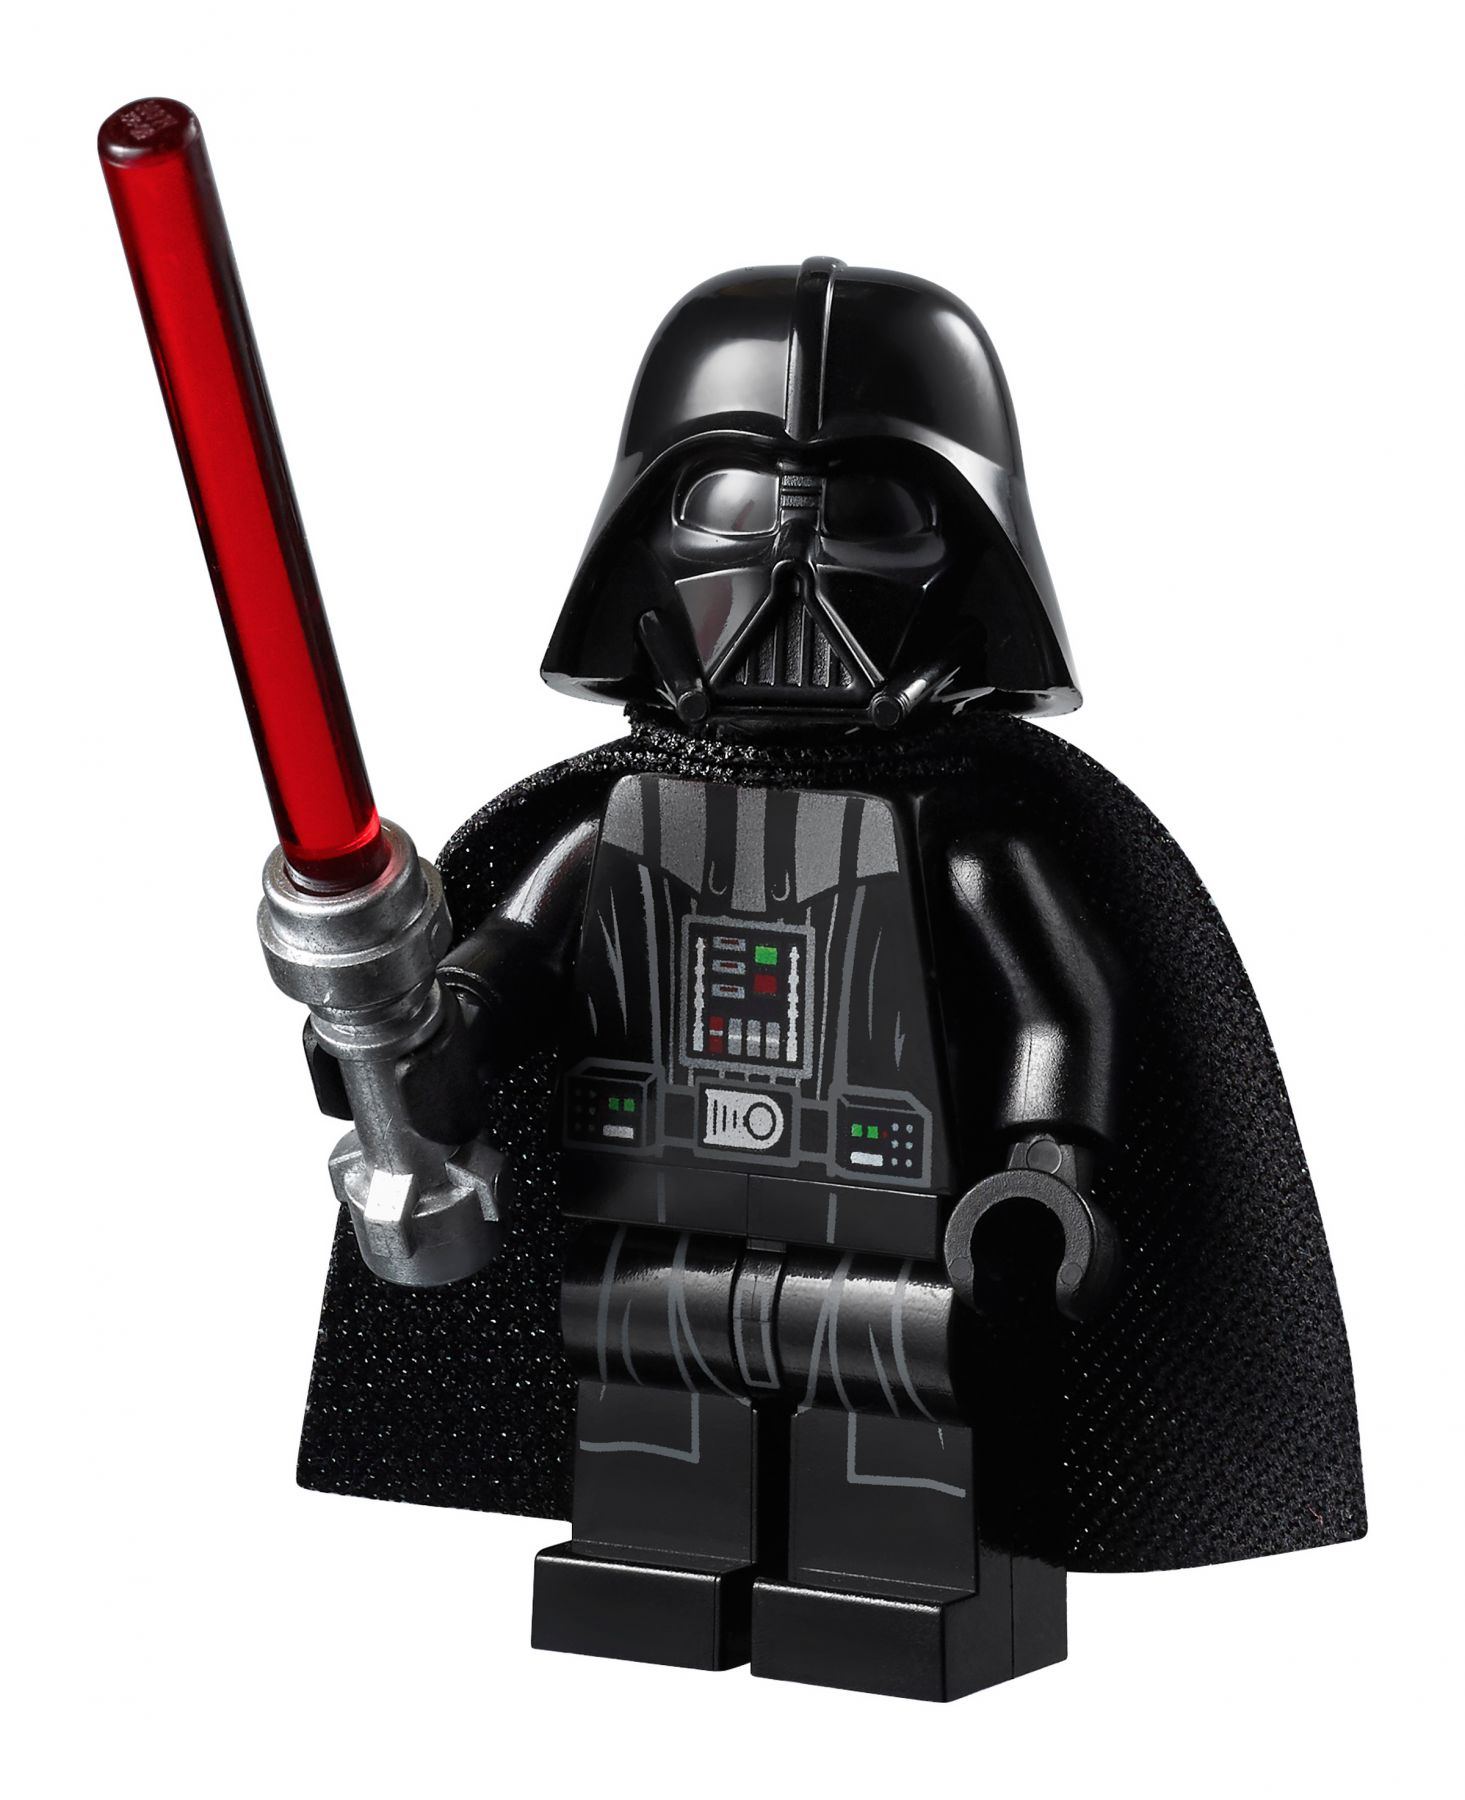 LEGO Star Wars 75222 Verrat in Cloud City™ LEGO_75222_alt13.jpg